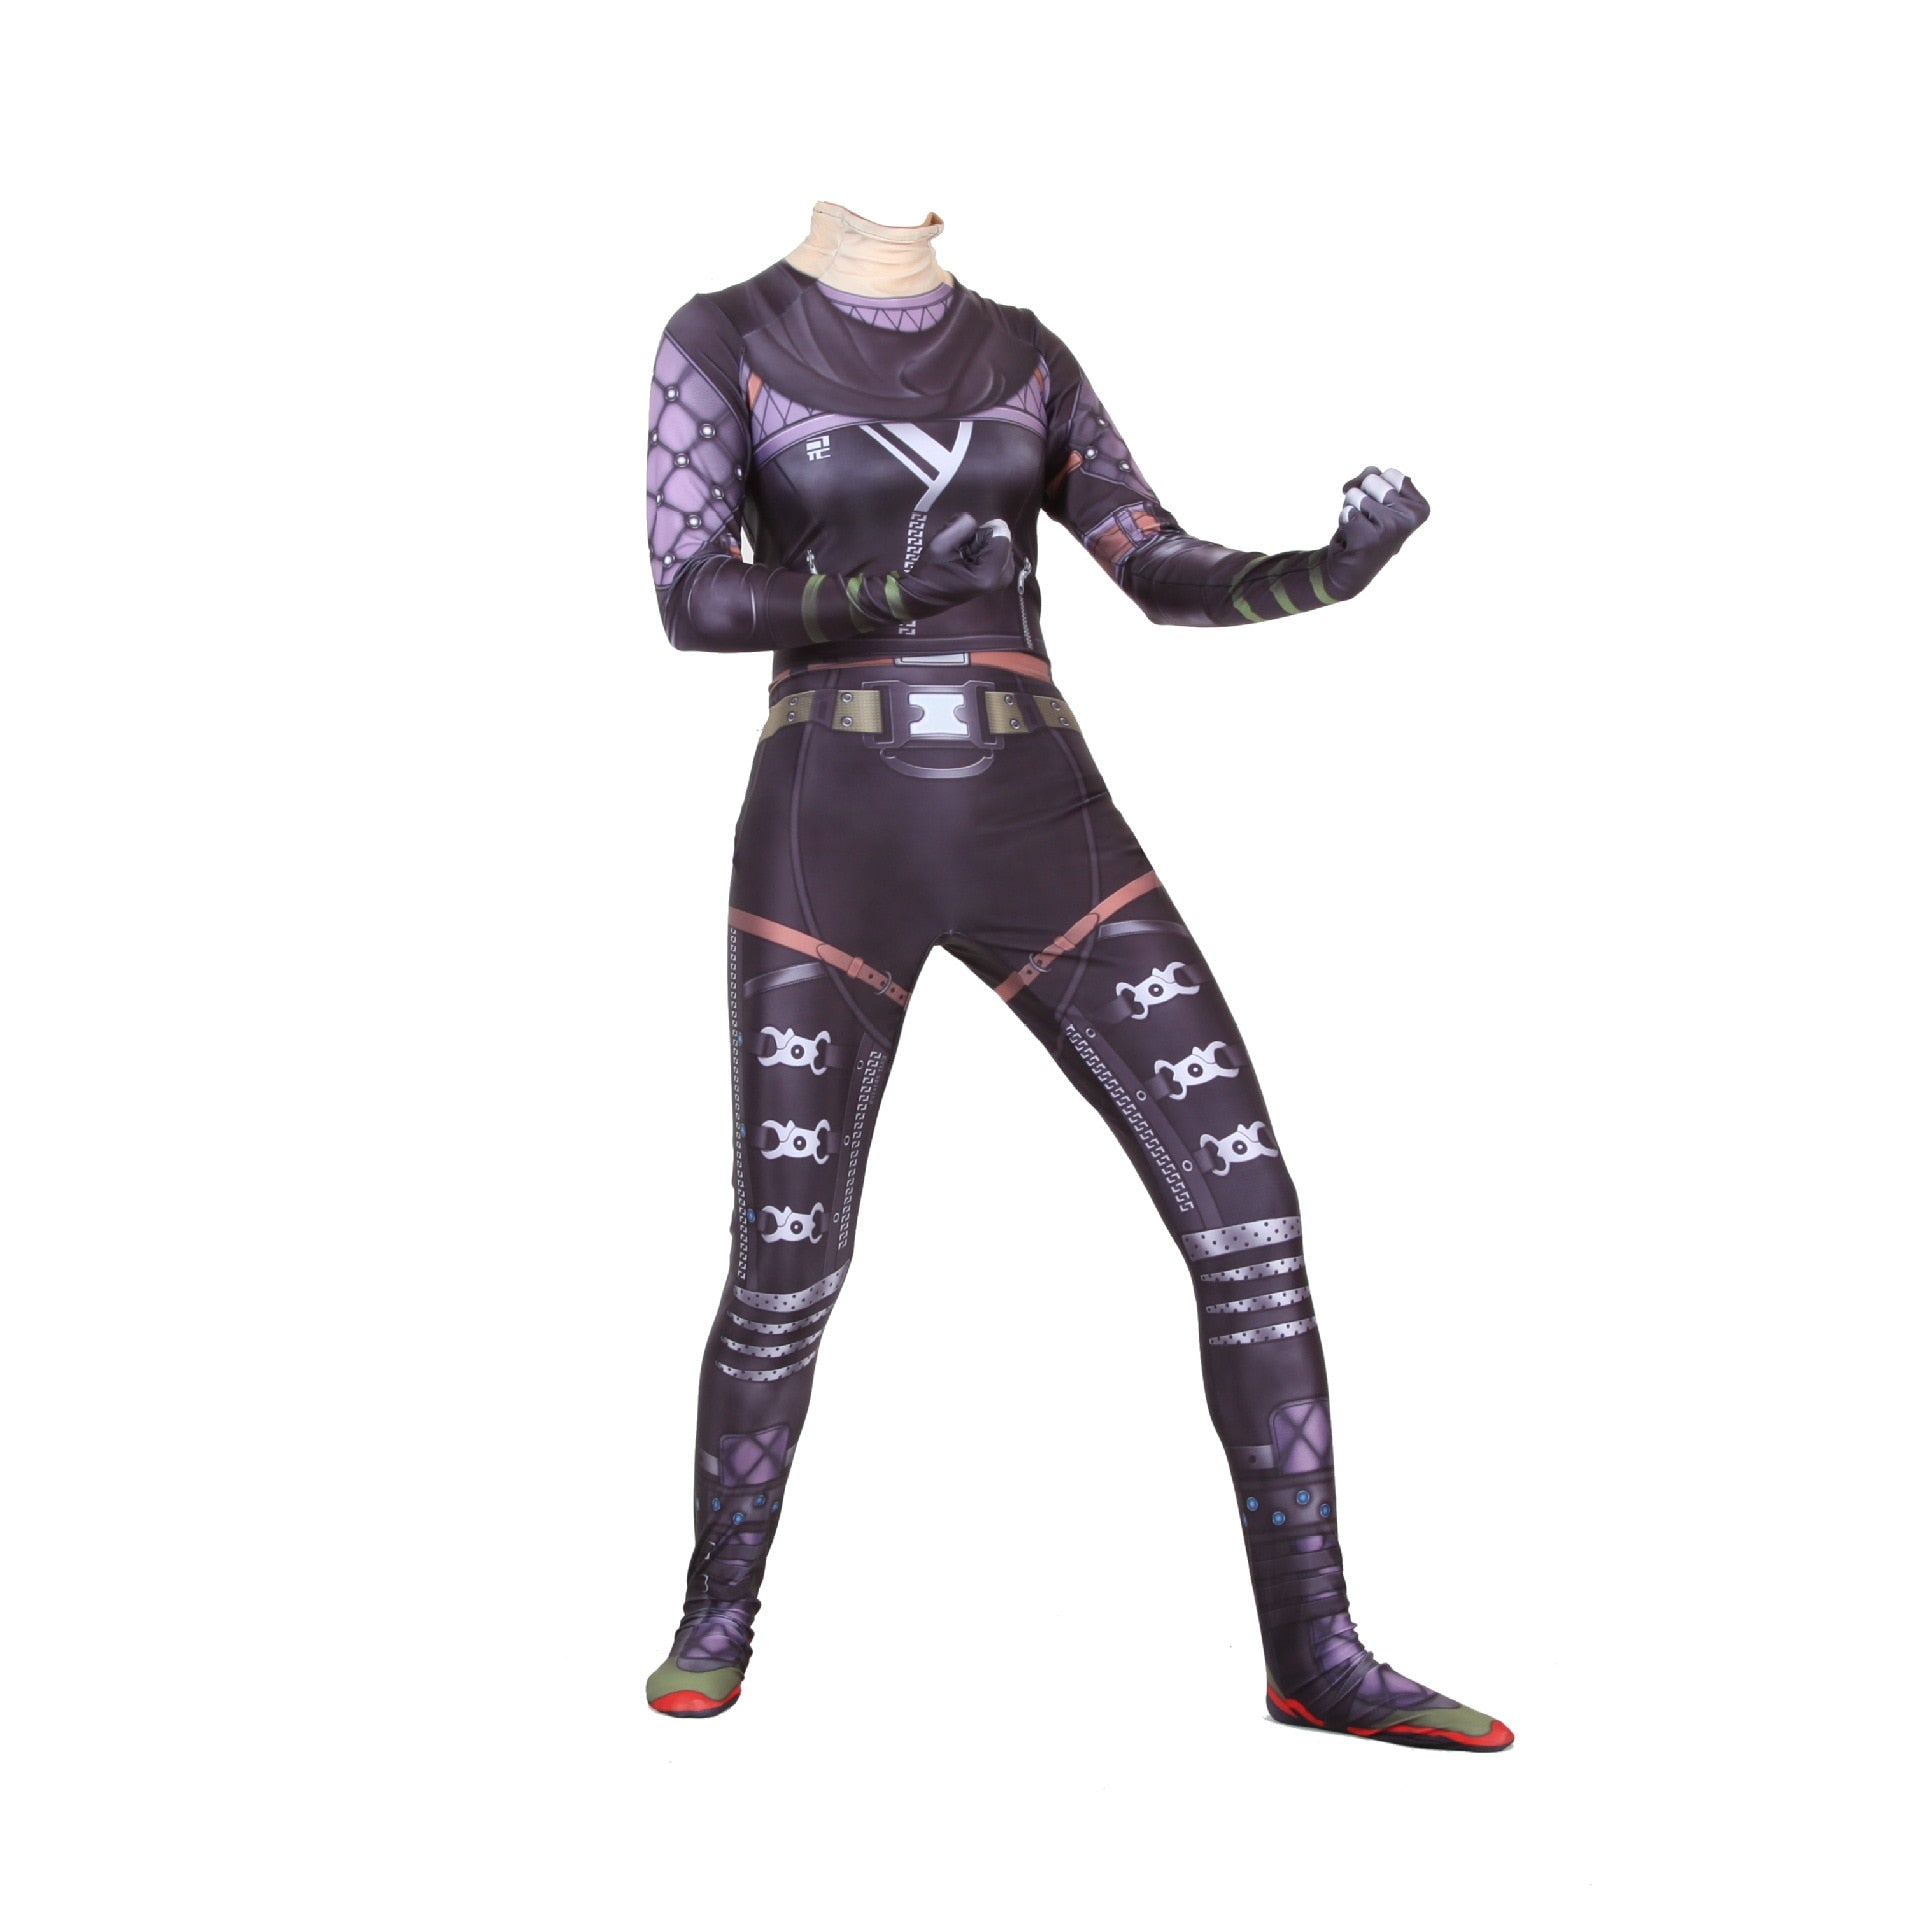 Apex legends New 2019 Game Wraith Cosplay Costume